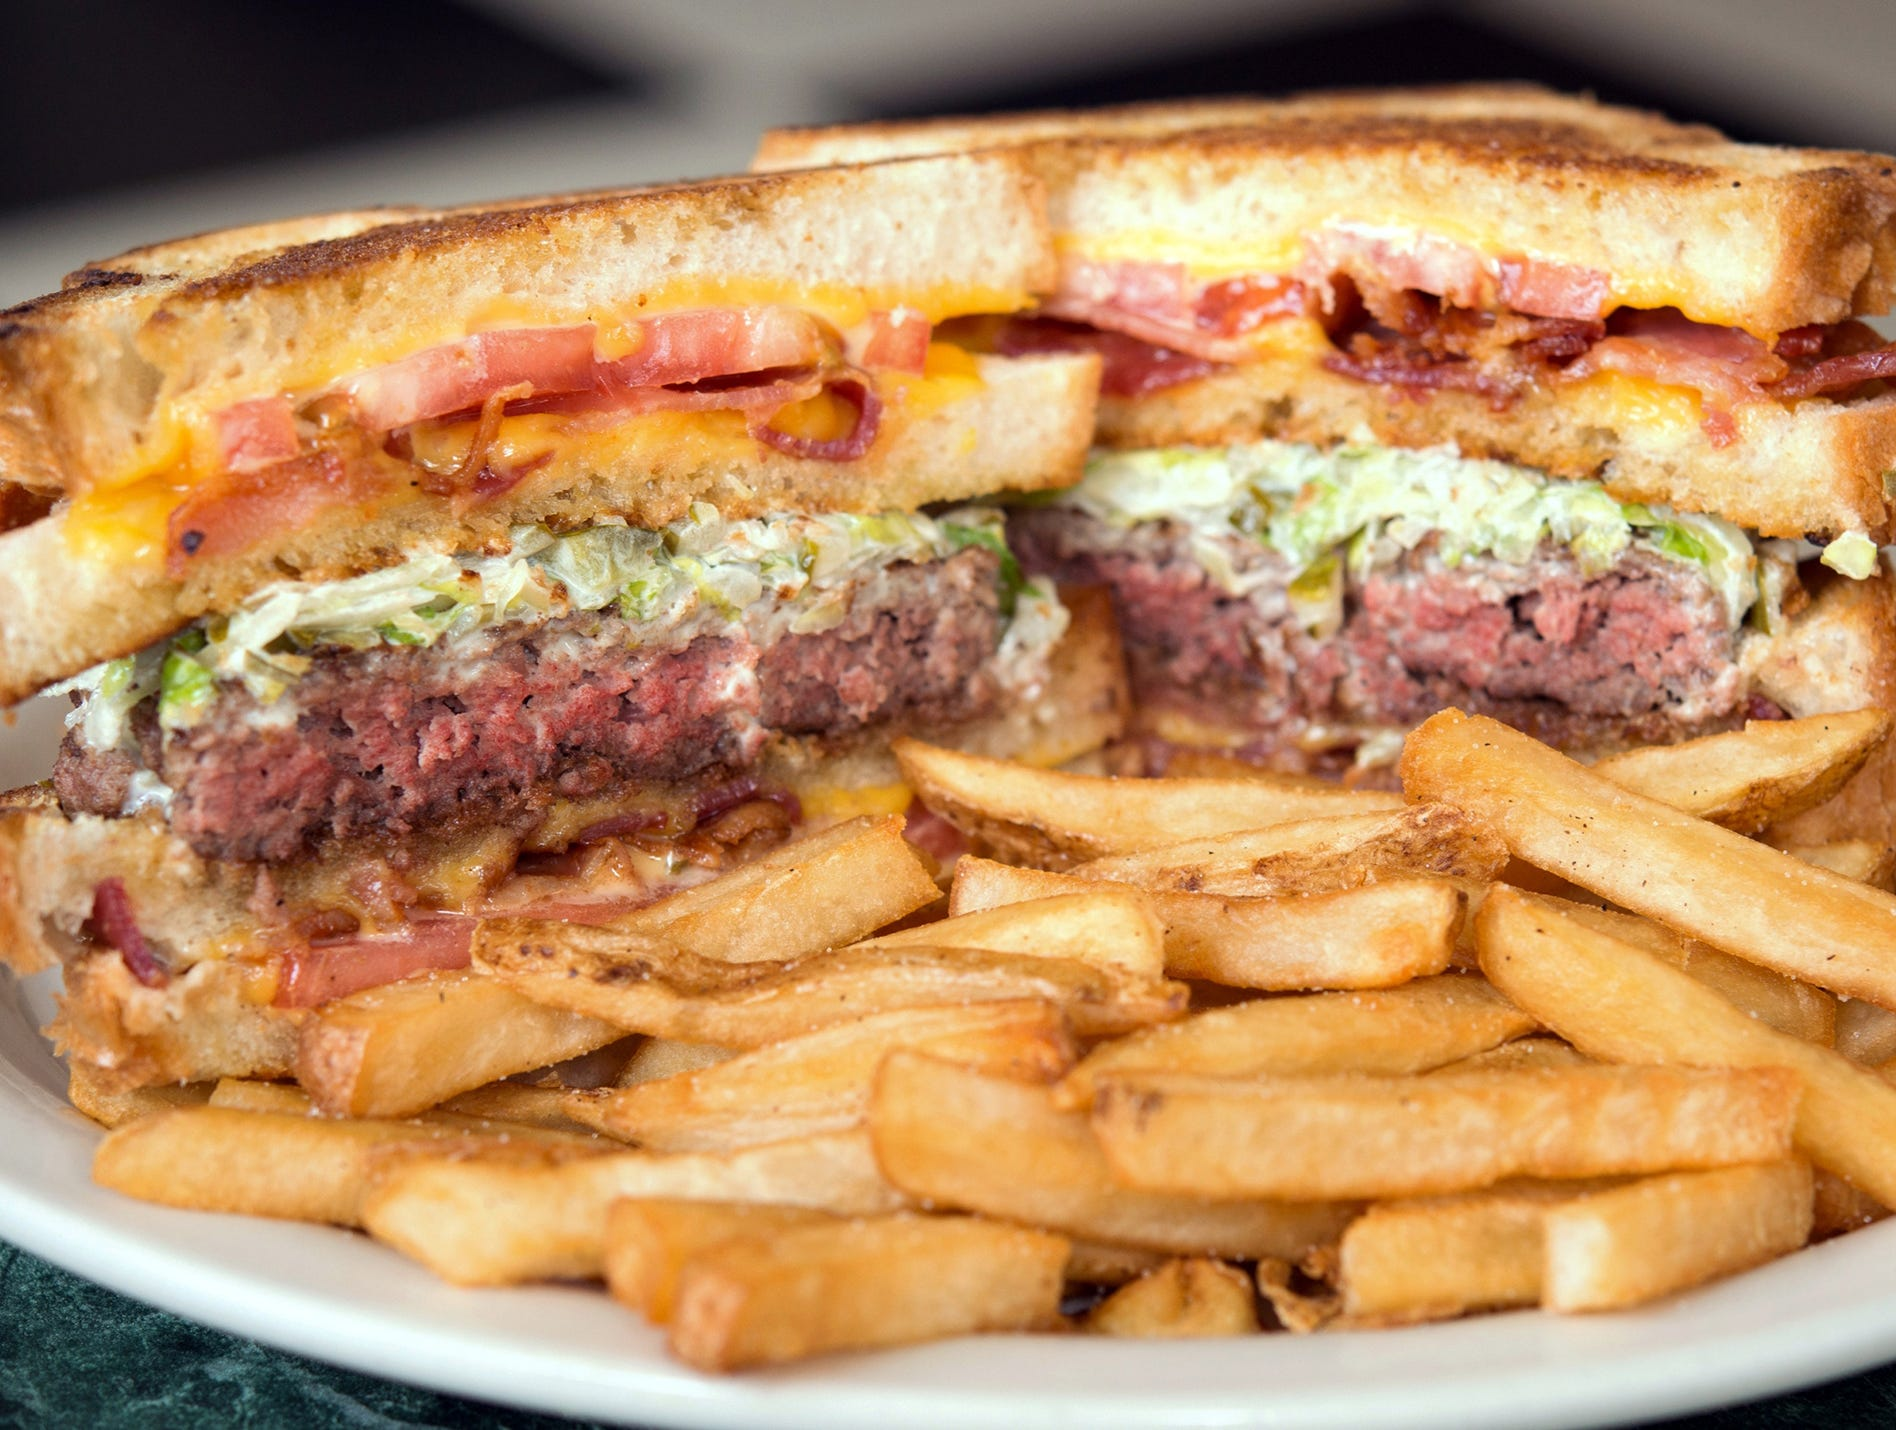 The Vortex Burger at Metro Diner features a half-pound Angus beef patty topped with lettuce slaw in between two grilled cheese sandwiches stuffed with American cheese, ripe tomatoes and hickory smoked bacon.